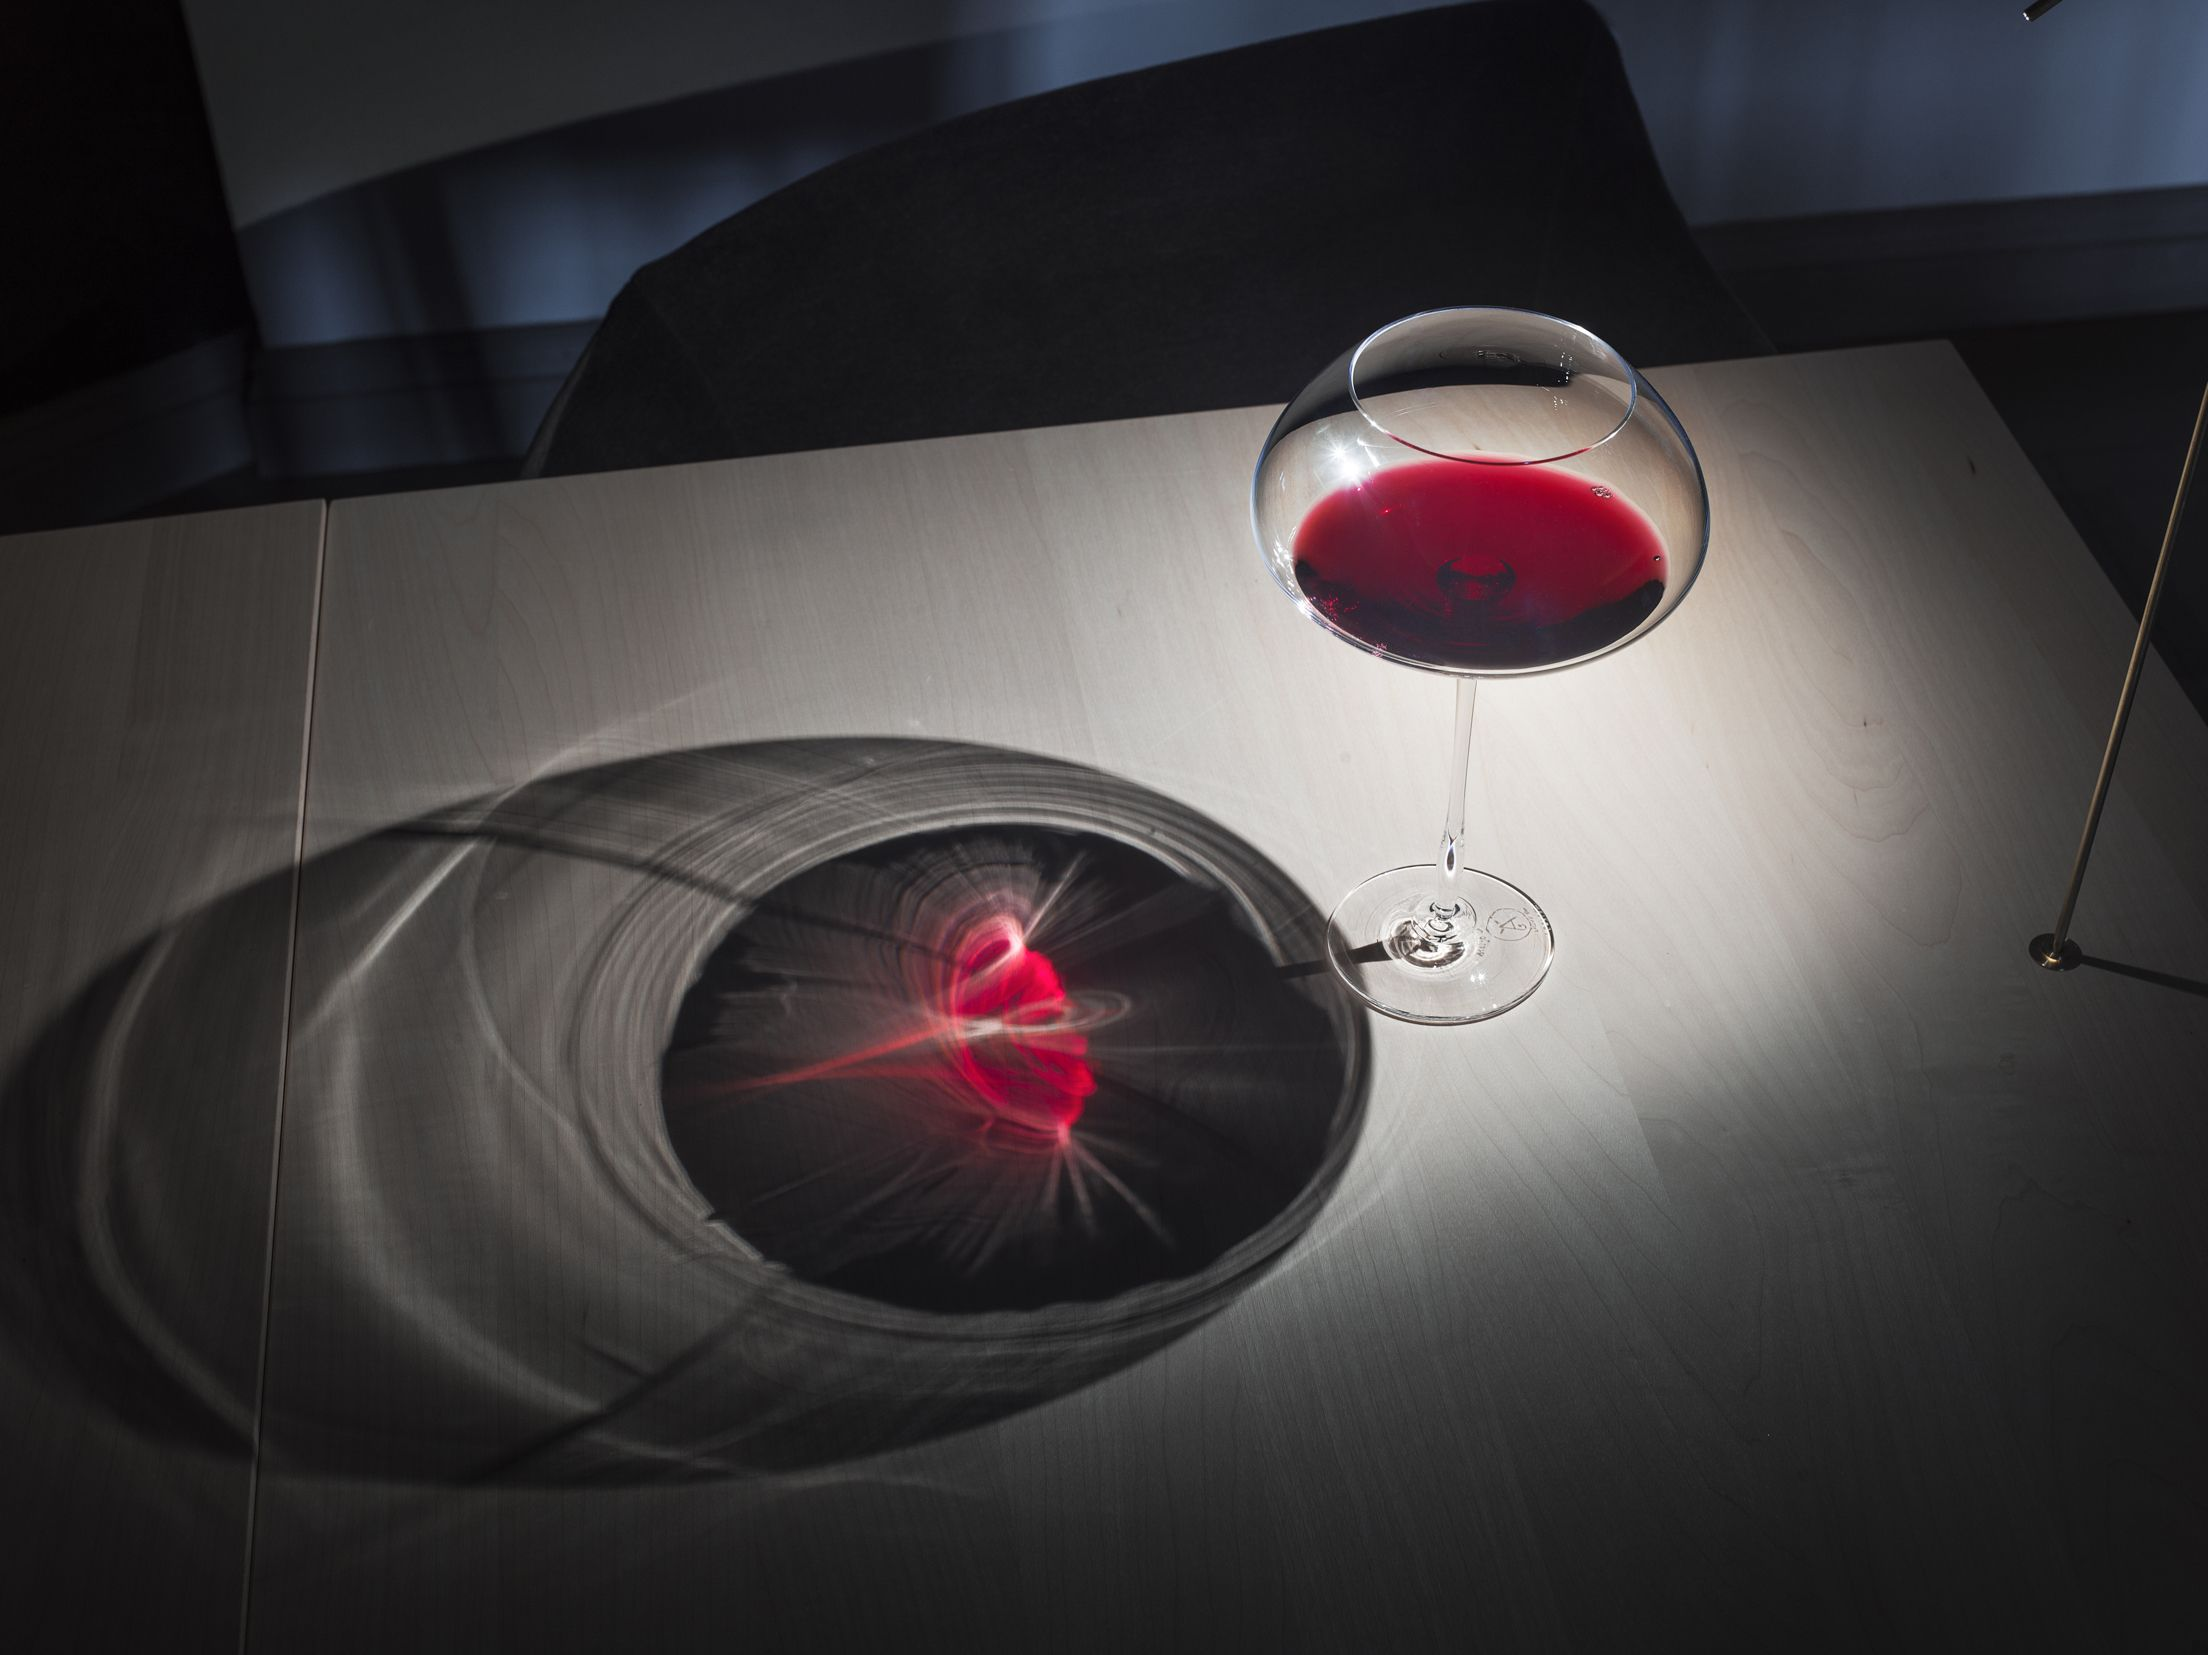 Finnjävel restaurant designed by Ateljé Sotamaa. Red Moon glass for aged wine. Photo by Kimmo Syväri. #ateljesotamaa #ateljésotamaa #finnjävel #finnjavel #finndining #finnishdesign #kivisotamaa #tuulisotamaa